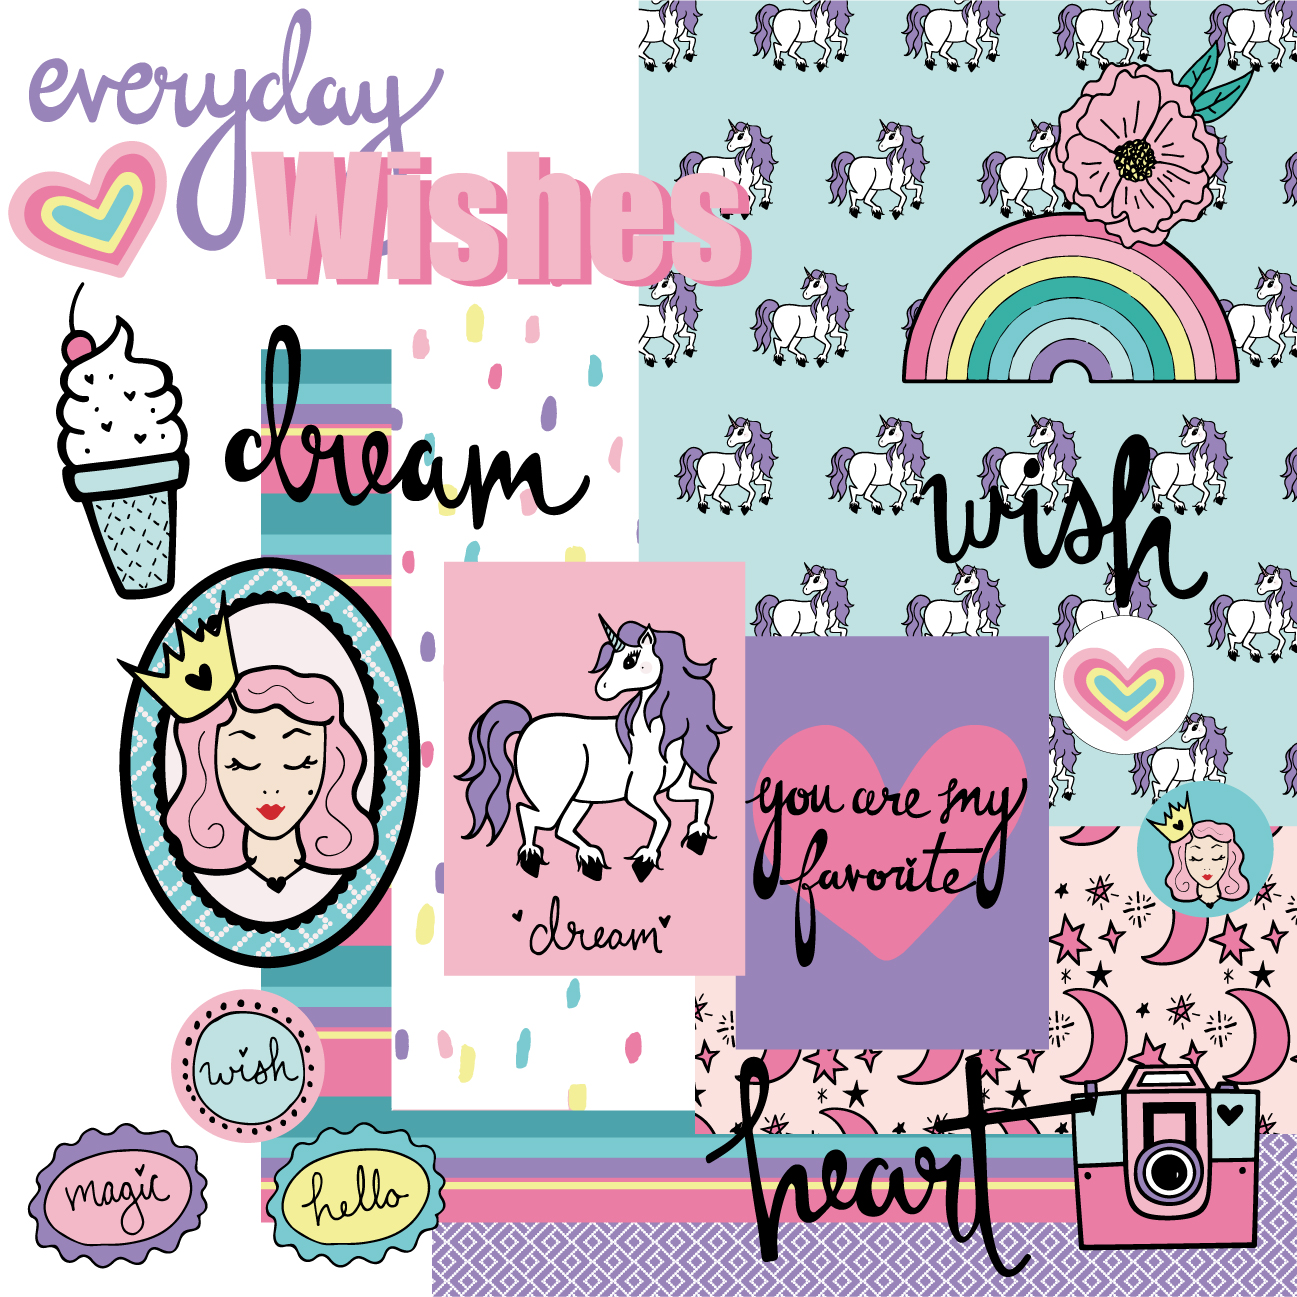 November 2017 - Everyday Wishes Sneak Preview-02.jpg